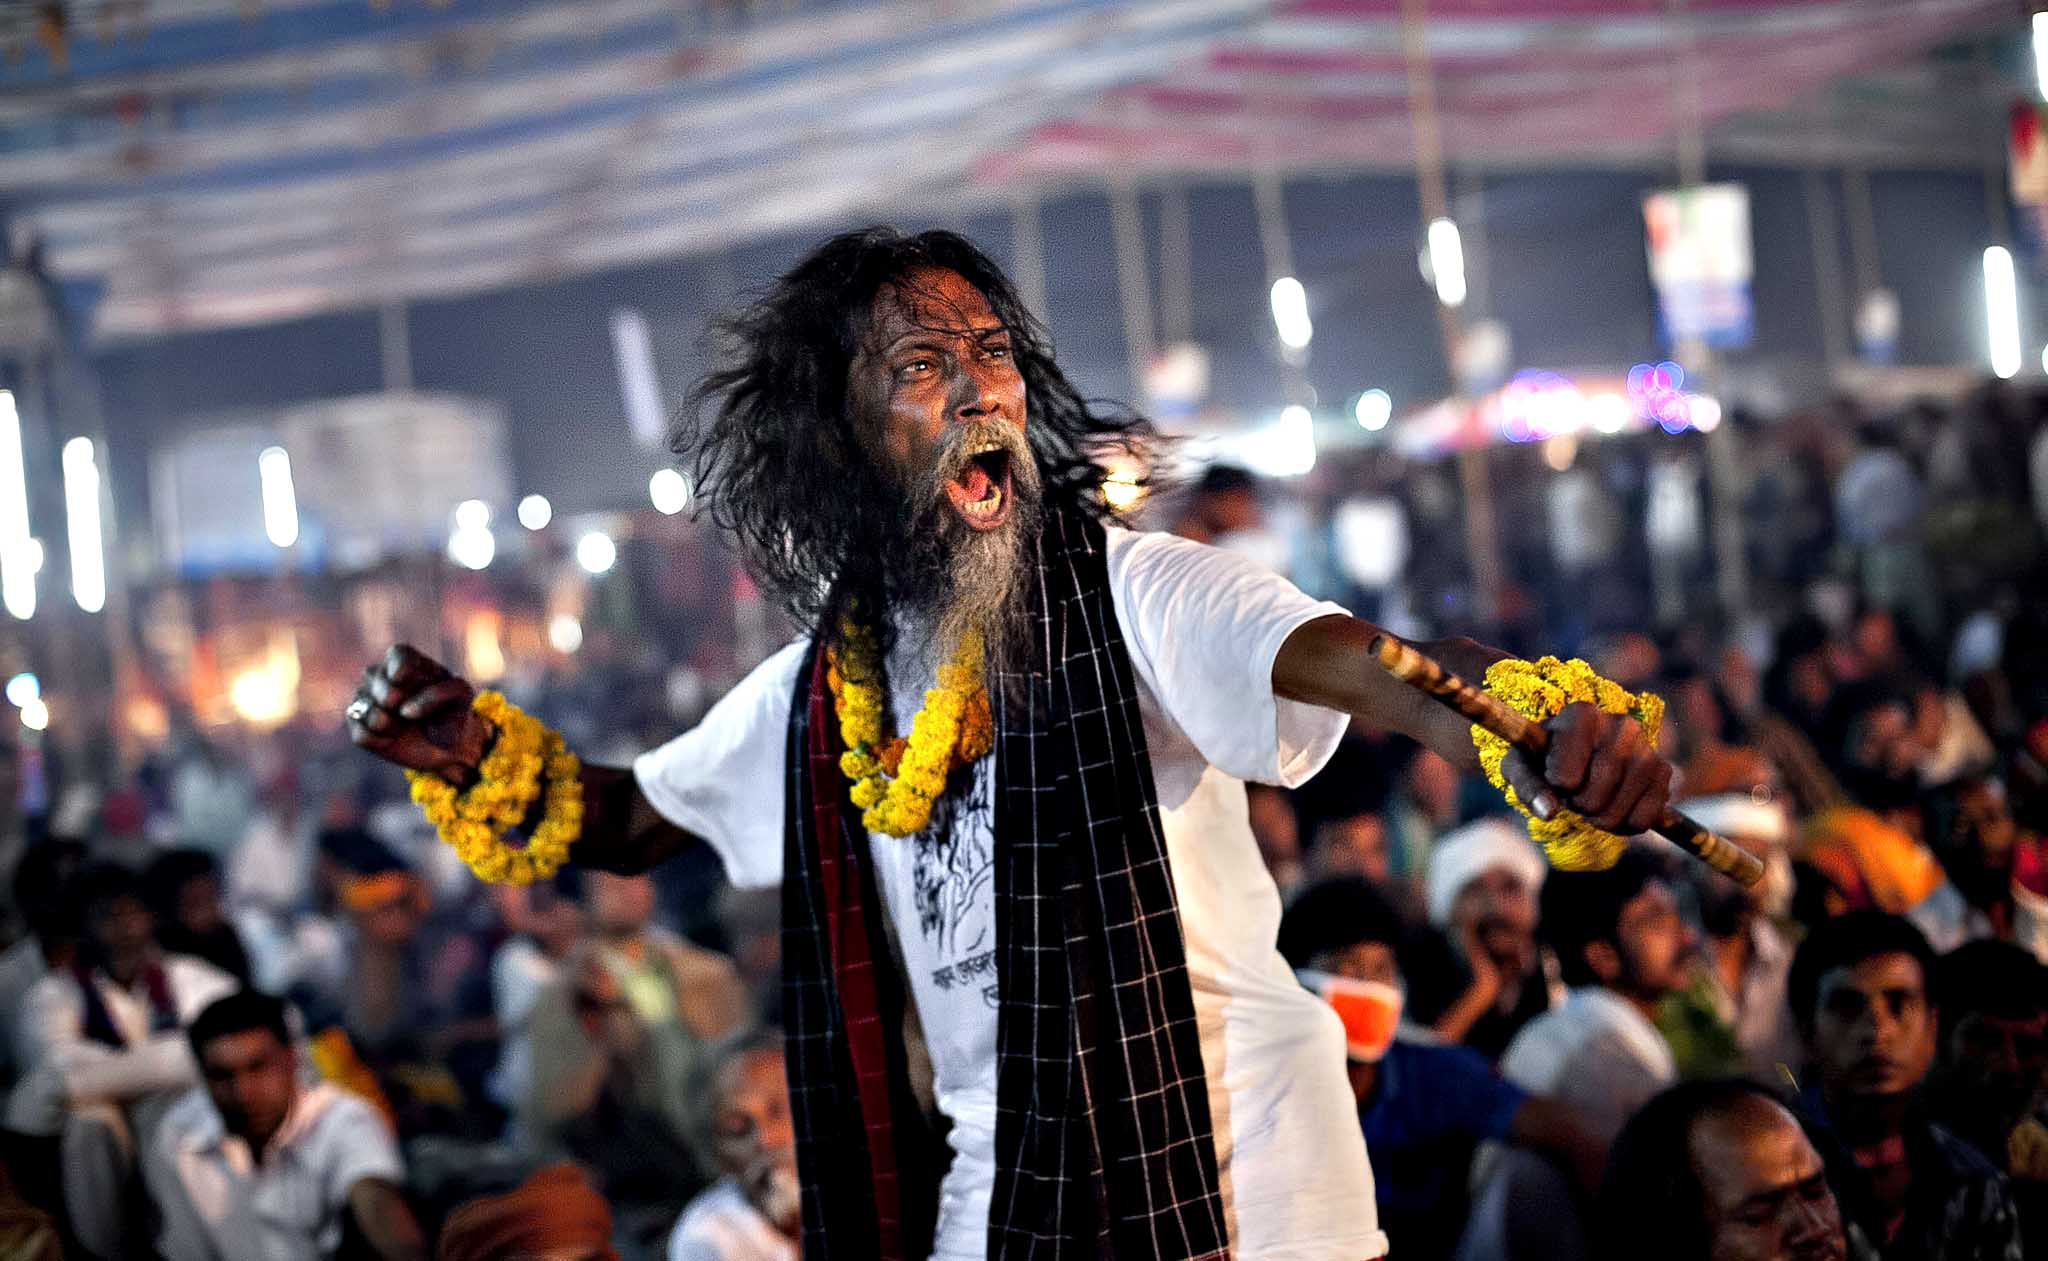 "A festival goer dances during a live music event during the 124th annual Lalon festival in Kushtia, Bangladesh. The Lalon Shah festival is an annual festival celebrating the life and death of Fakir Lalon Shah, who was a Bangladeshi mystic, baul, philosopher, musician, writer and advocate of religious tolerance. Buddhists, Hindus and Muslims follow his teachings and attend the festival, which comprises of 3 days of music, dance, and consumption of marijuana, which is referred to as ""siddhi"", or enlightenment."